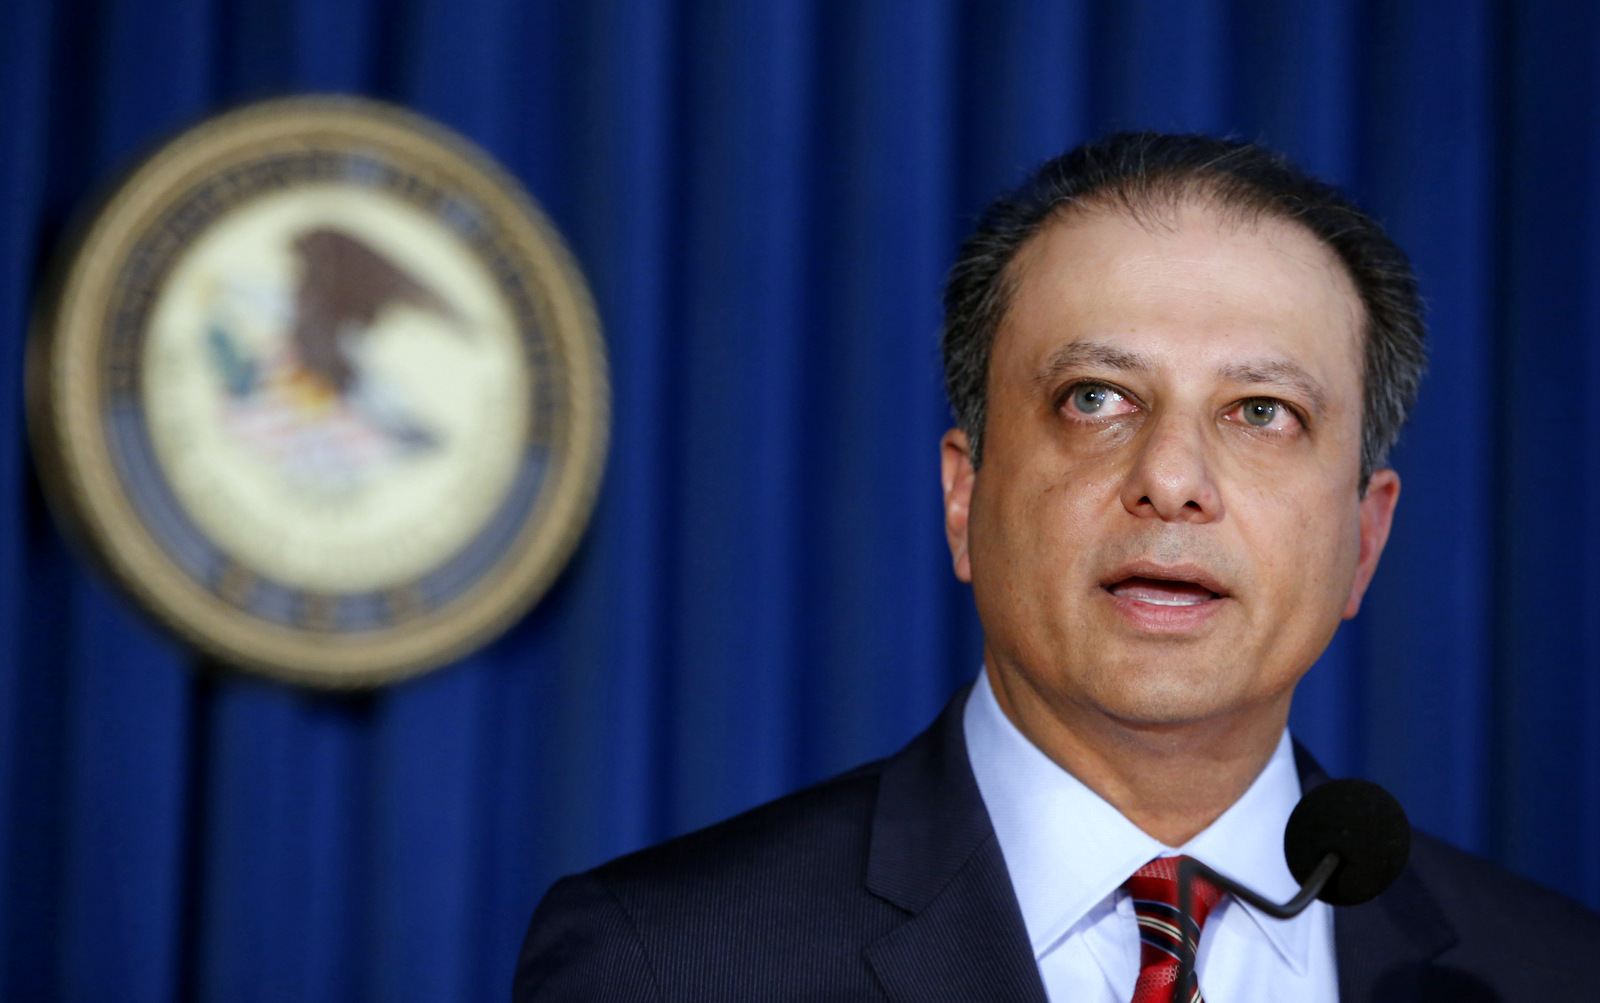 U.S. Attorney Preet Bharara speaks during a news conference in New York.  On Wednesday, March 8, 2017, two days before Attorney General Jeff Sessions gave dozens of the country's top federal prosecutors just hours to resign and clean out their desks. Bharara said on Saturday, March 11, 2017, that he was fired after refusing to resign. (AP/Kathy Willens)